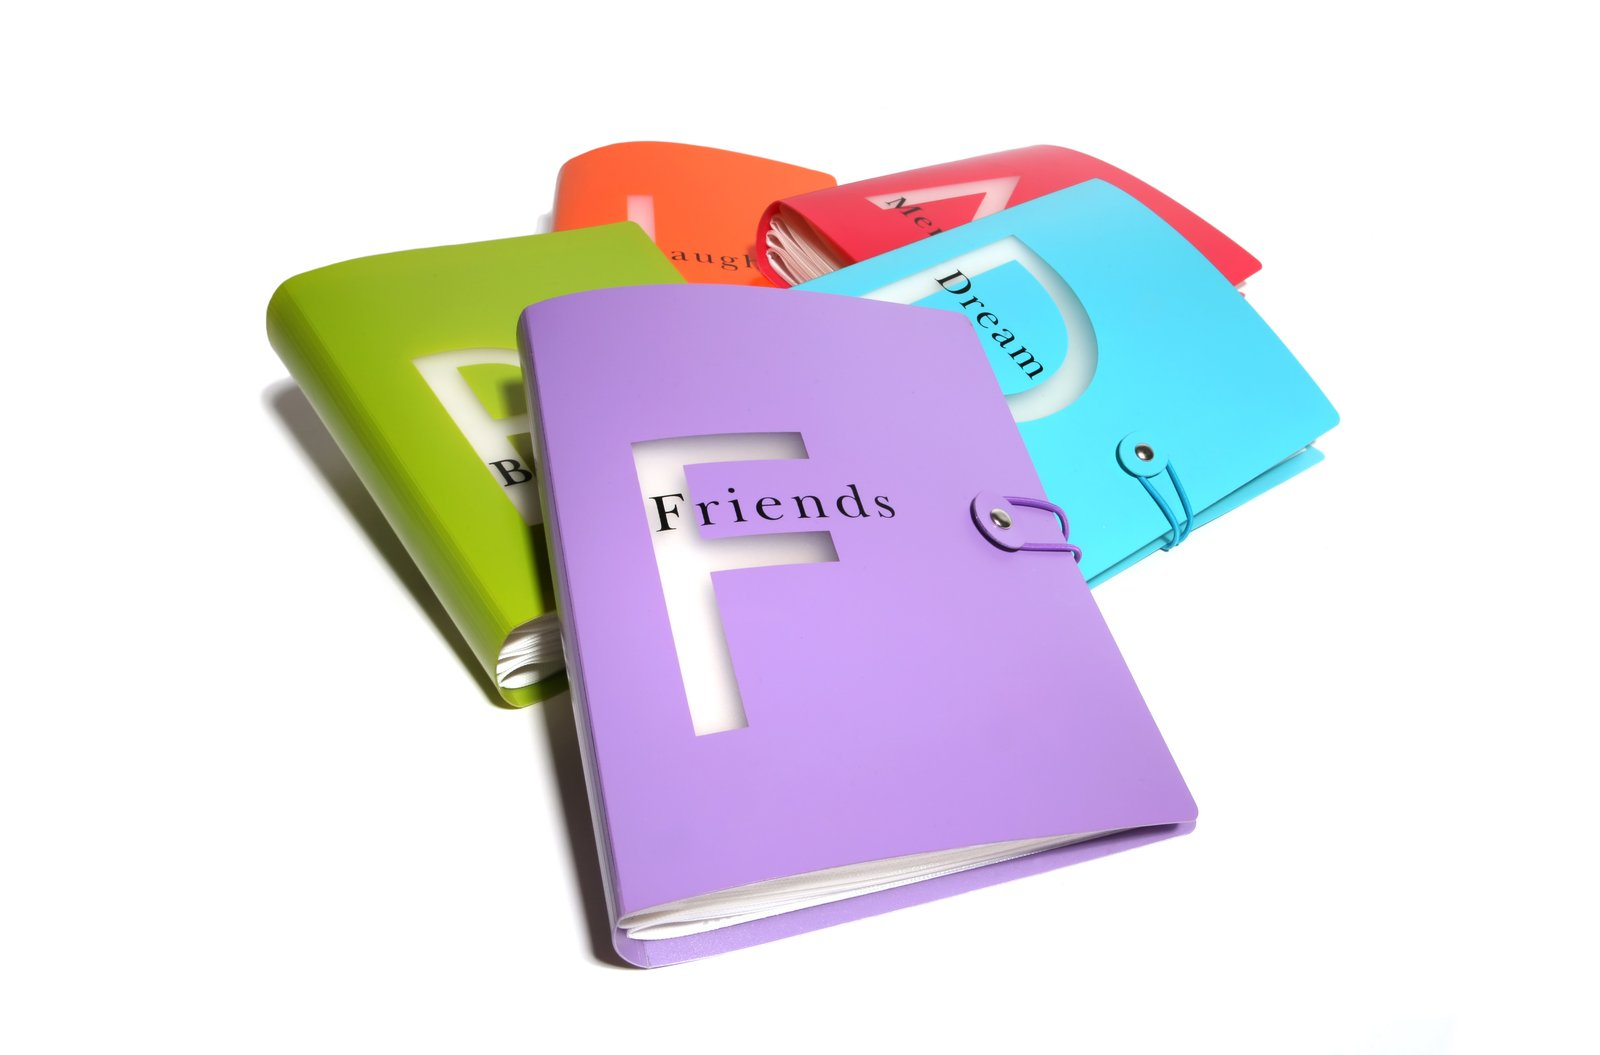 Friends and stress management tips